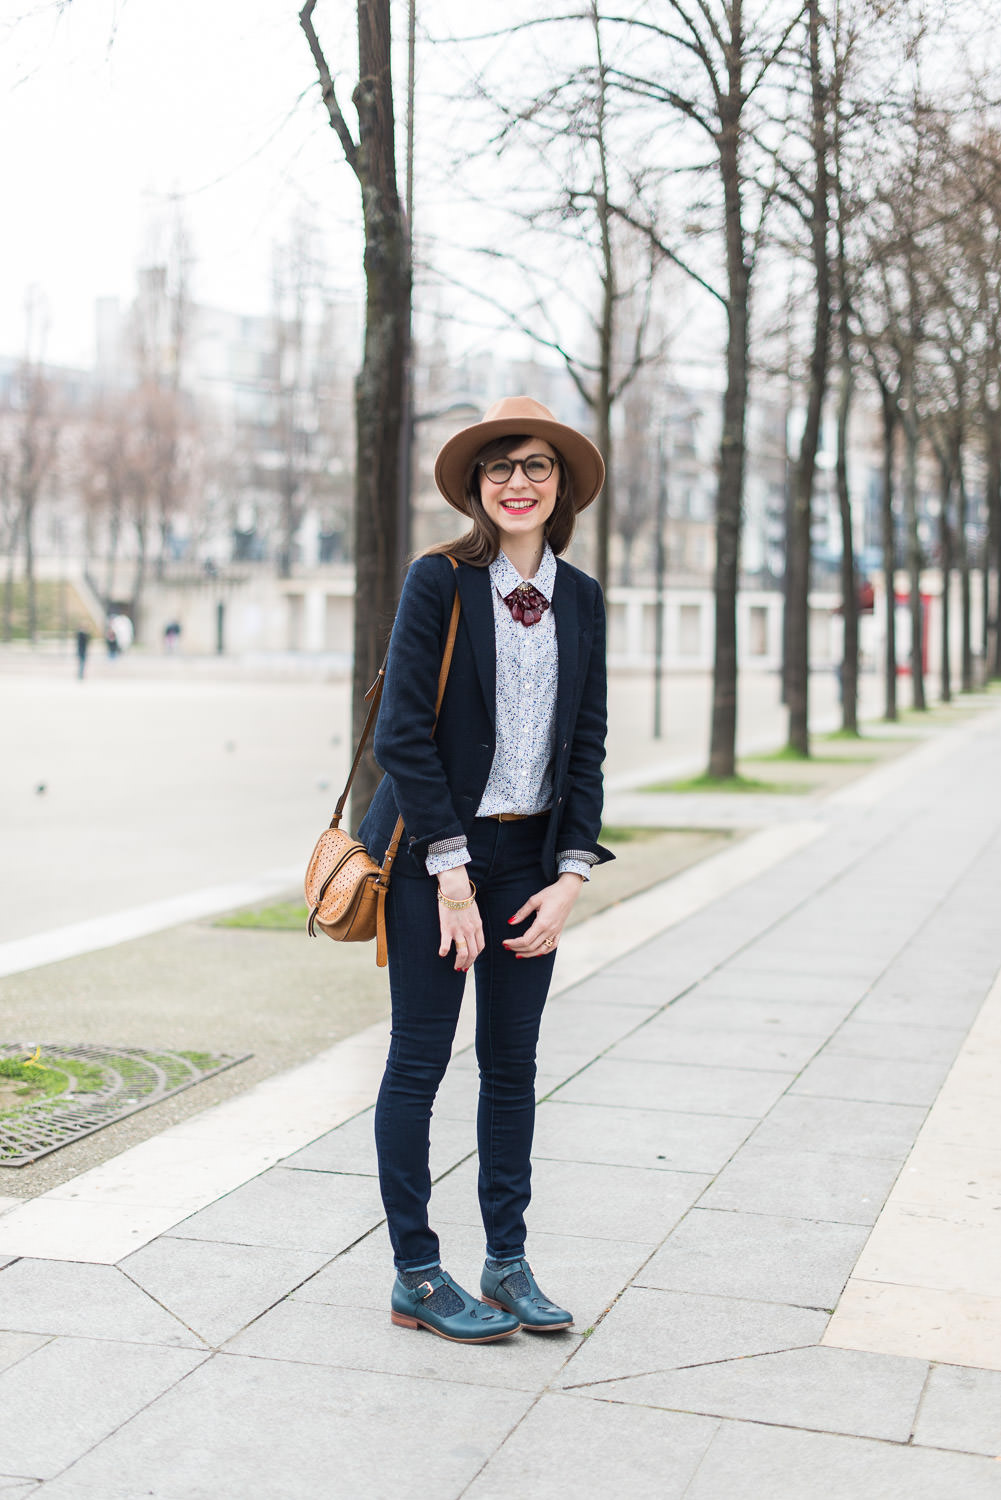 Blog-mode-Mode-And-The-City-looks-collaboration-clarks-orla-kiely-2-6